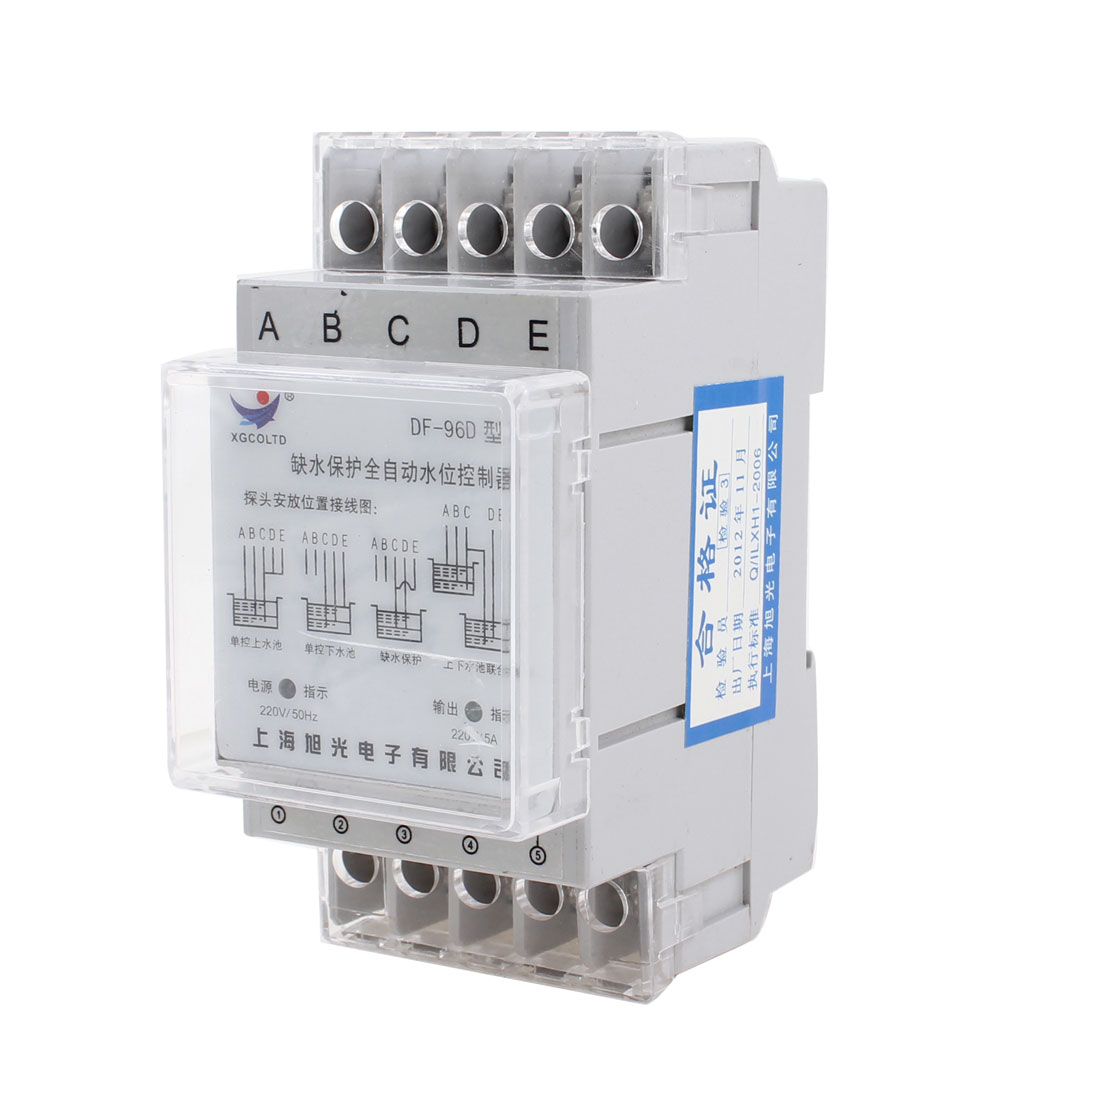 DF-96D 220V 50HZ 5A Wall Installation Protective Automatic Level Controller